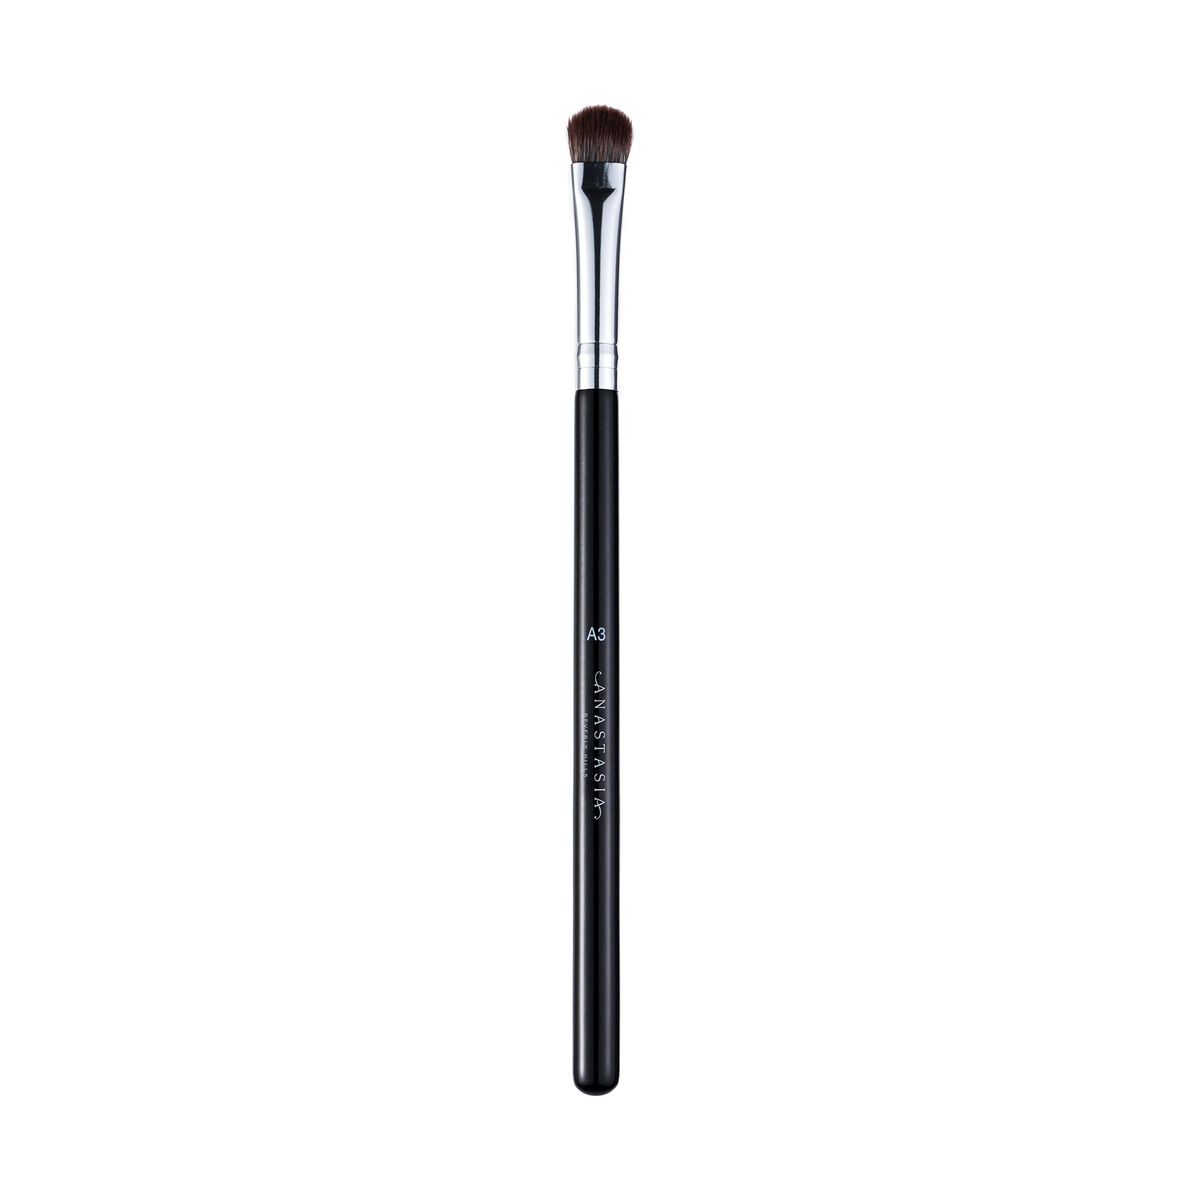 Pro Brush- A3 Firm Shader Brush